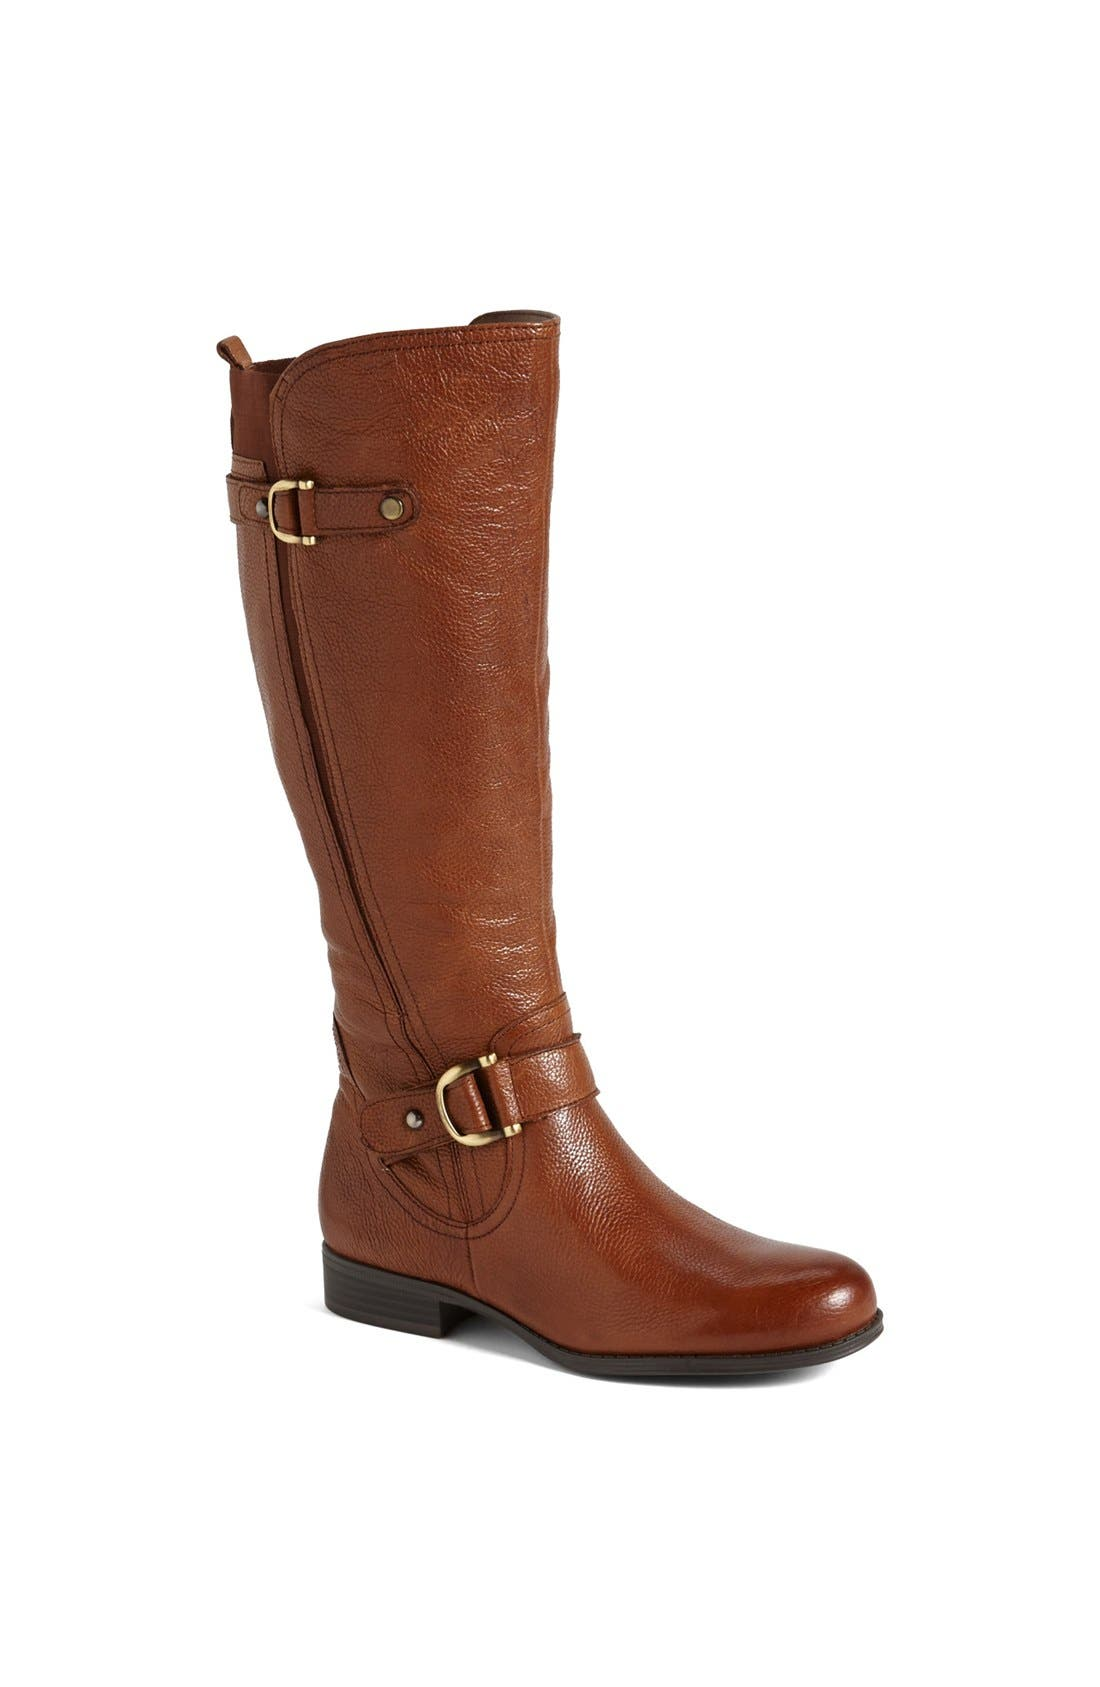 Main Image - Naturalizer 'Jersey' Leather Riding Boot (Wide Calf) (Online Only)